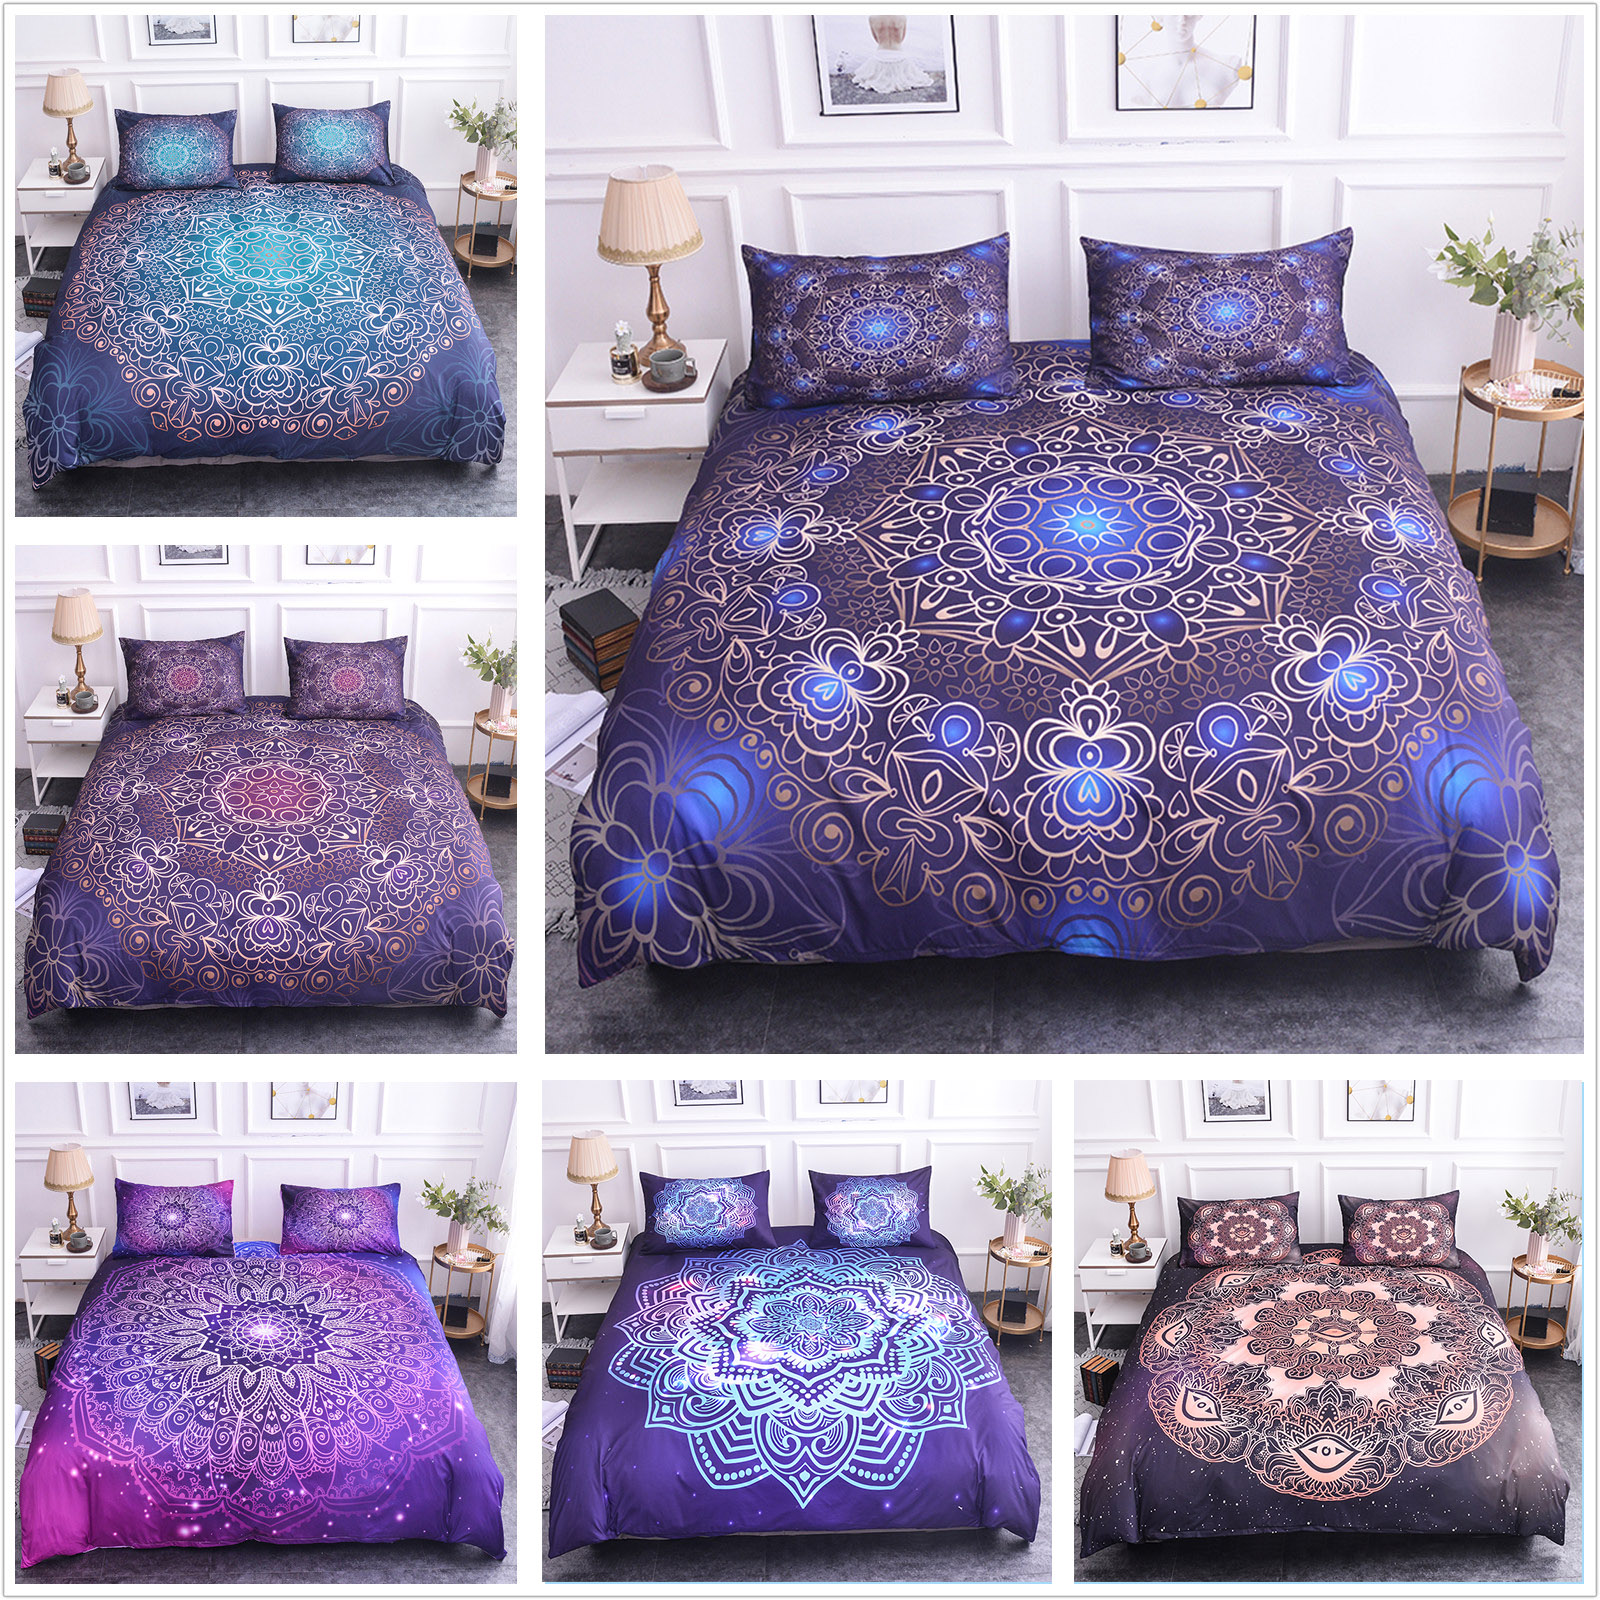 Luxury Bedding 3D Floral Print Bedding Set Bed King Duvet Cover Set Quilt Cover Queen Size Comforter Sets